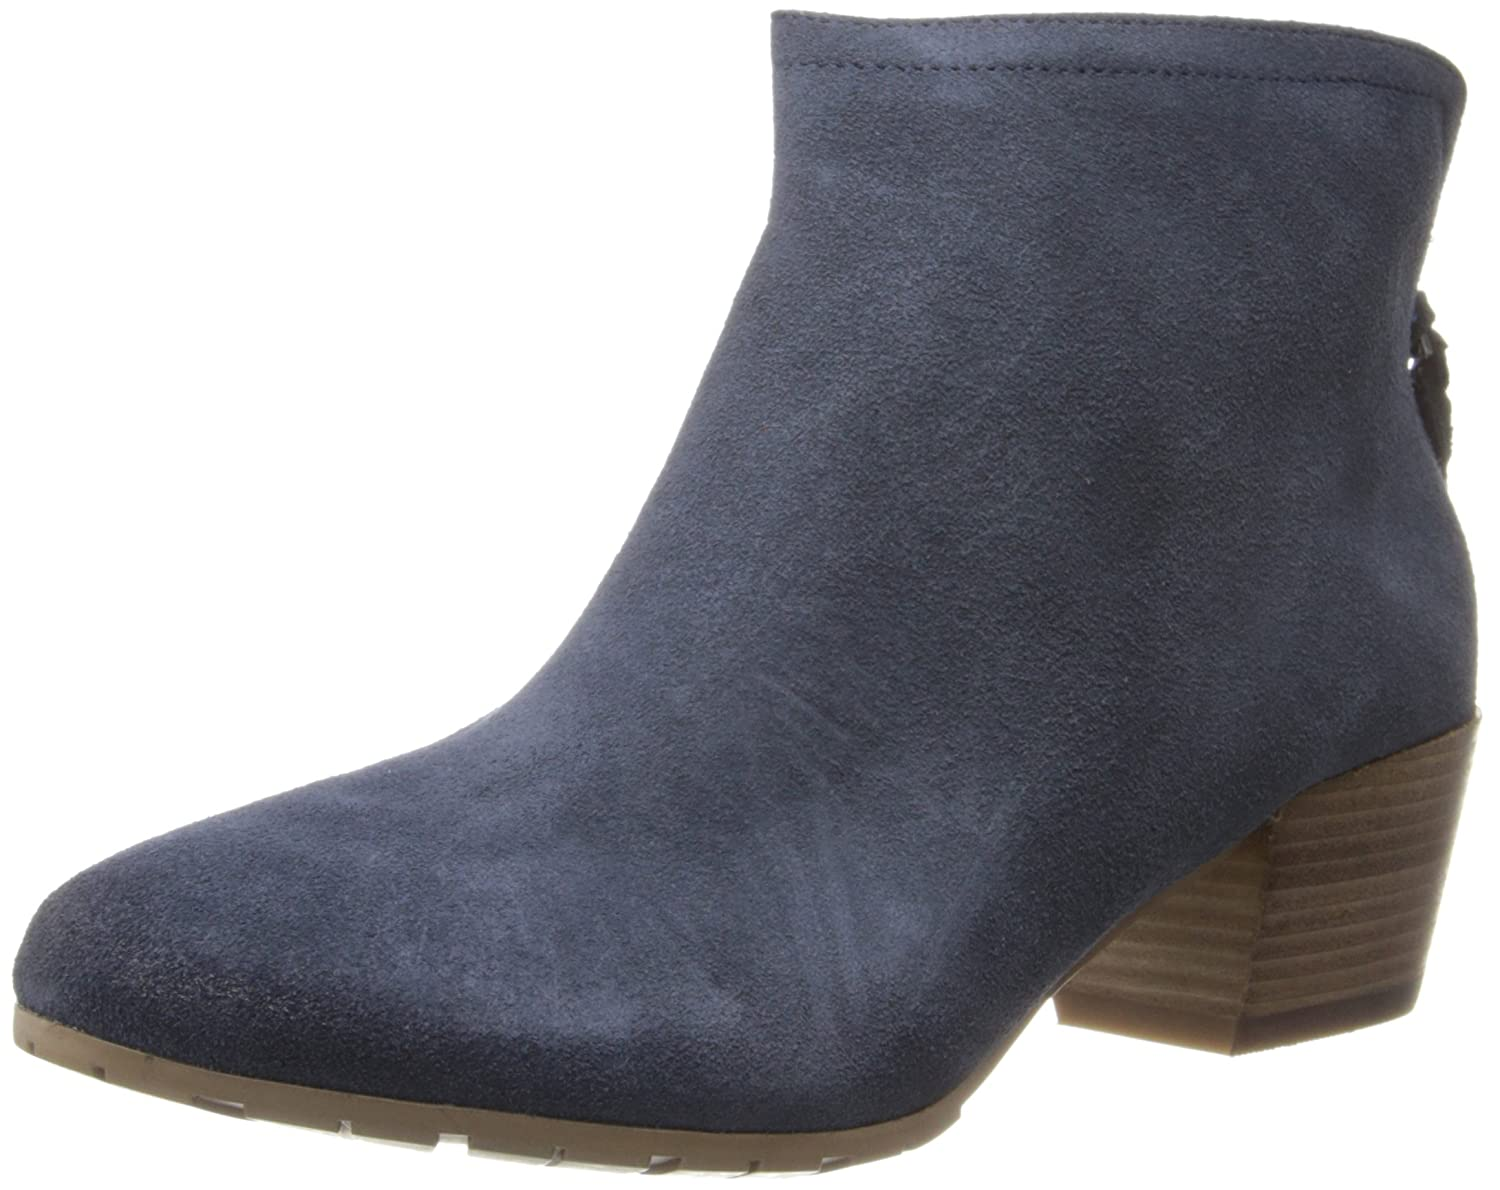 Kenneth Cole REACTION Women's Pil Age Ankle Boot B00IM5BR6Q 9 B(M) US|Navy